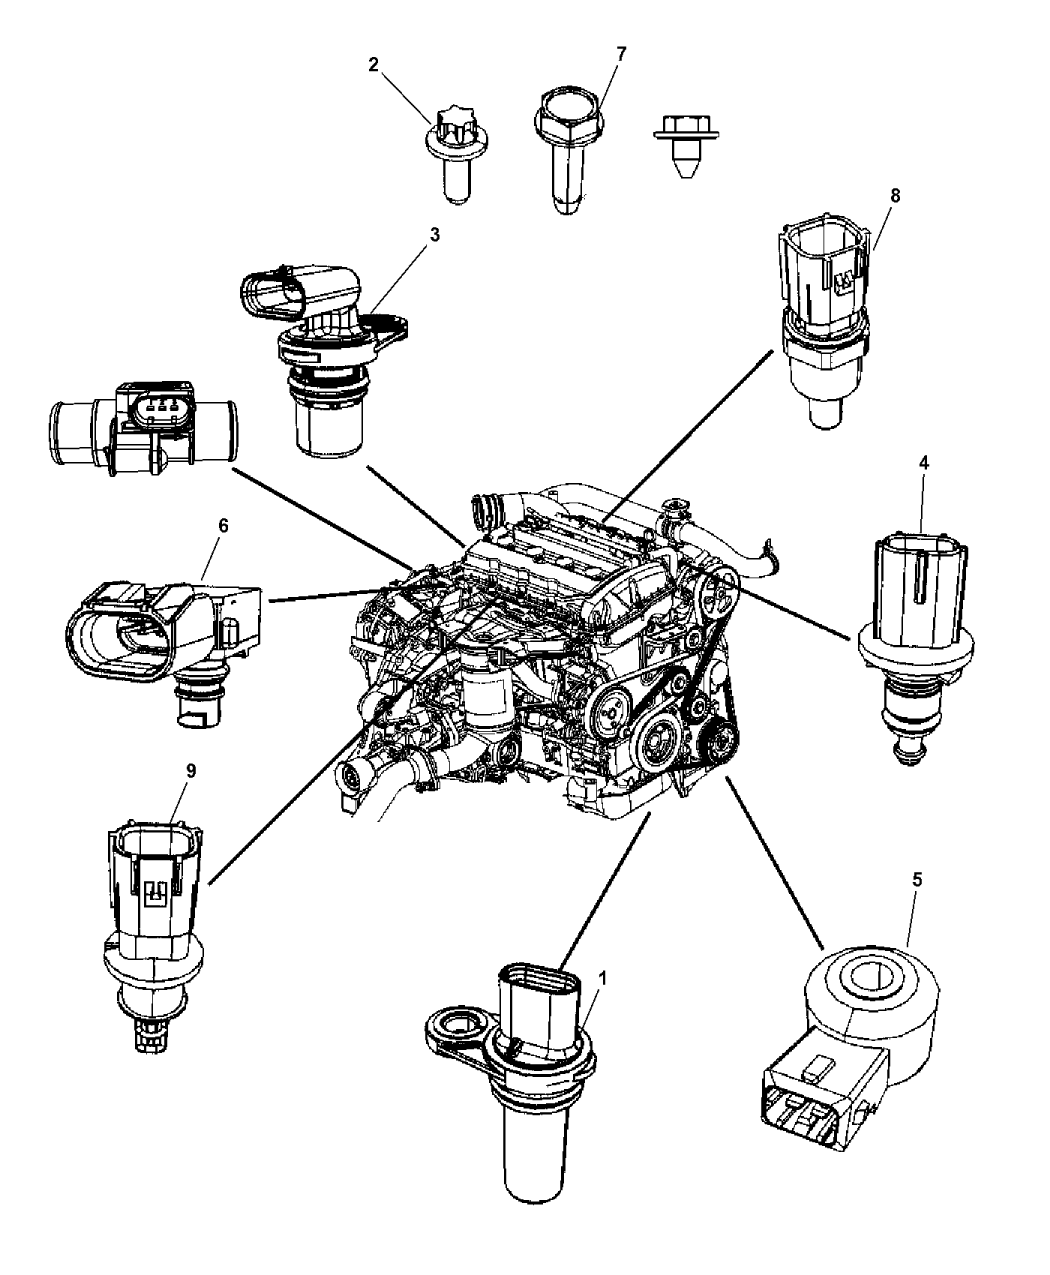 2015 Jeep Compass Wiring Diagram Library 2009 Patriot Fuse Sensors Engine